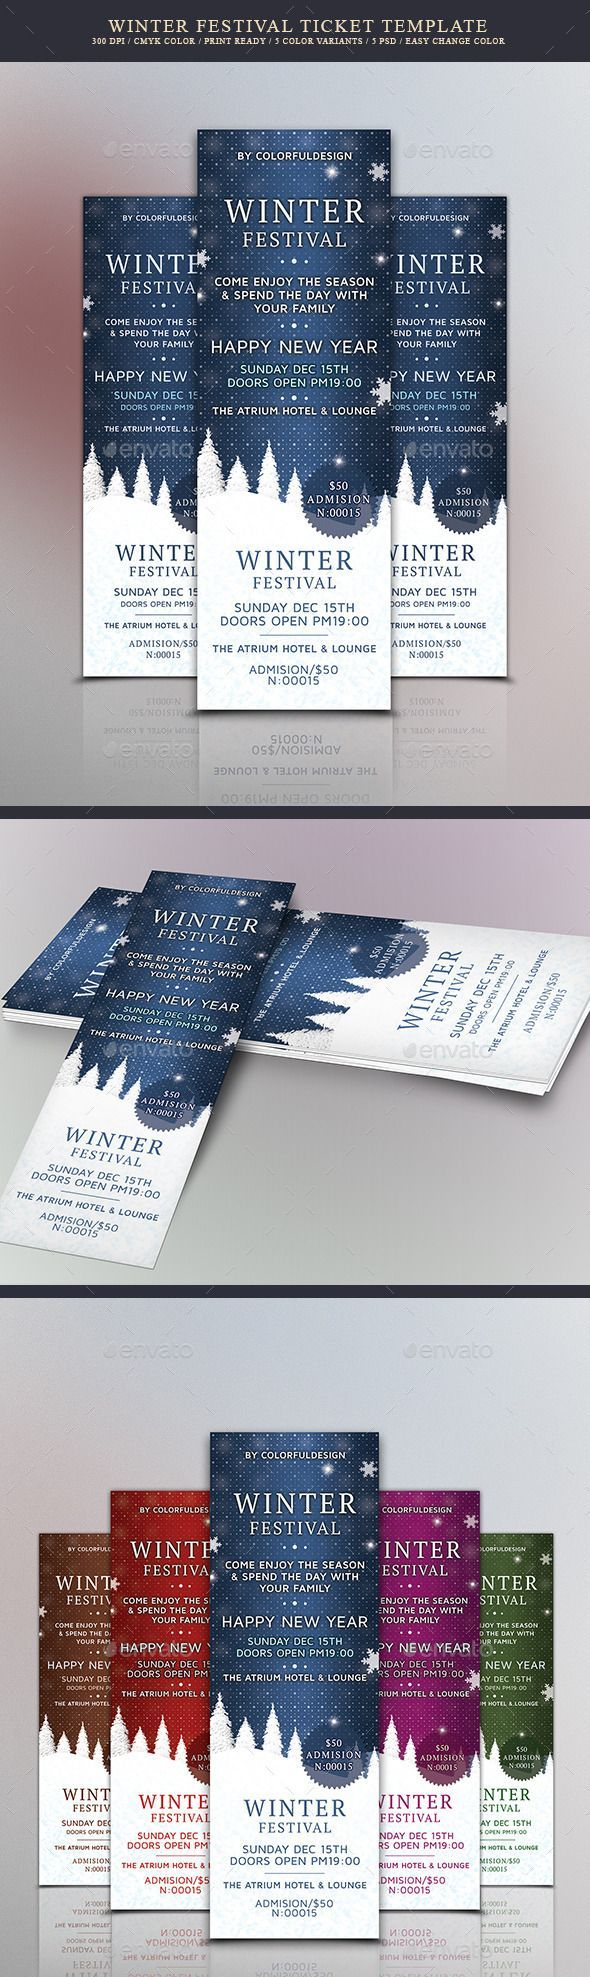 Winter Festival Ticket Template PSD. Download here: https://graphicriver.net/item/winter-festival-ticket-template/13783630?ref=ksioks